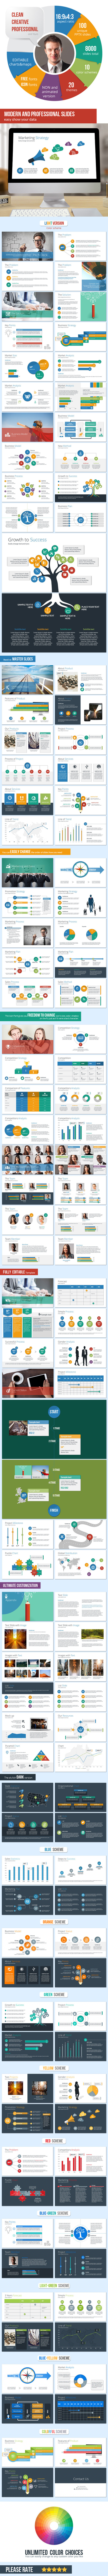 GraphicRiver Pitch Deck NY PowerPoint Presentation Template 9924140